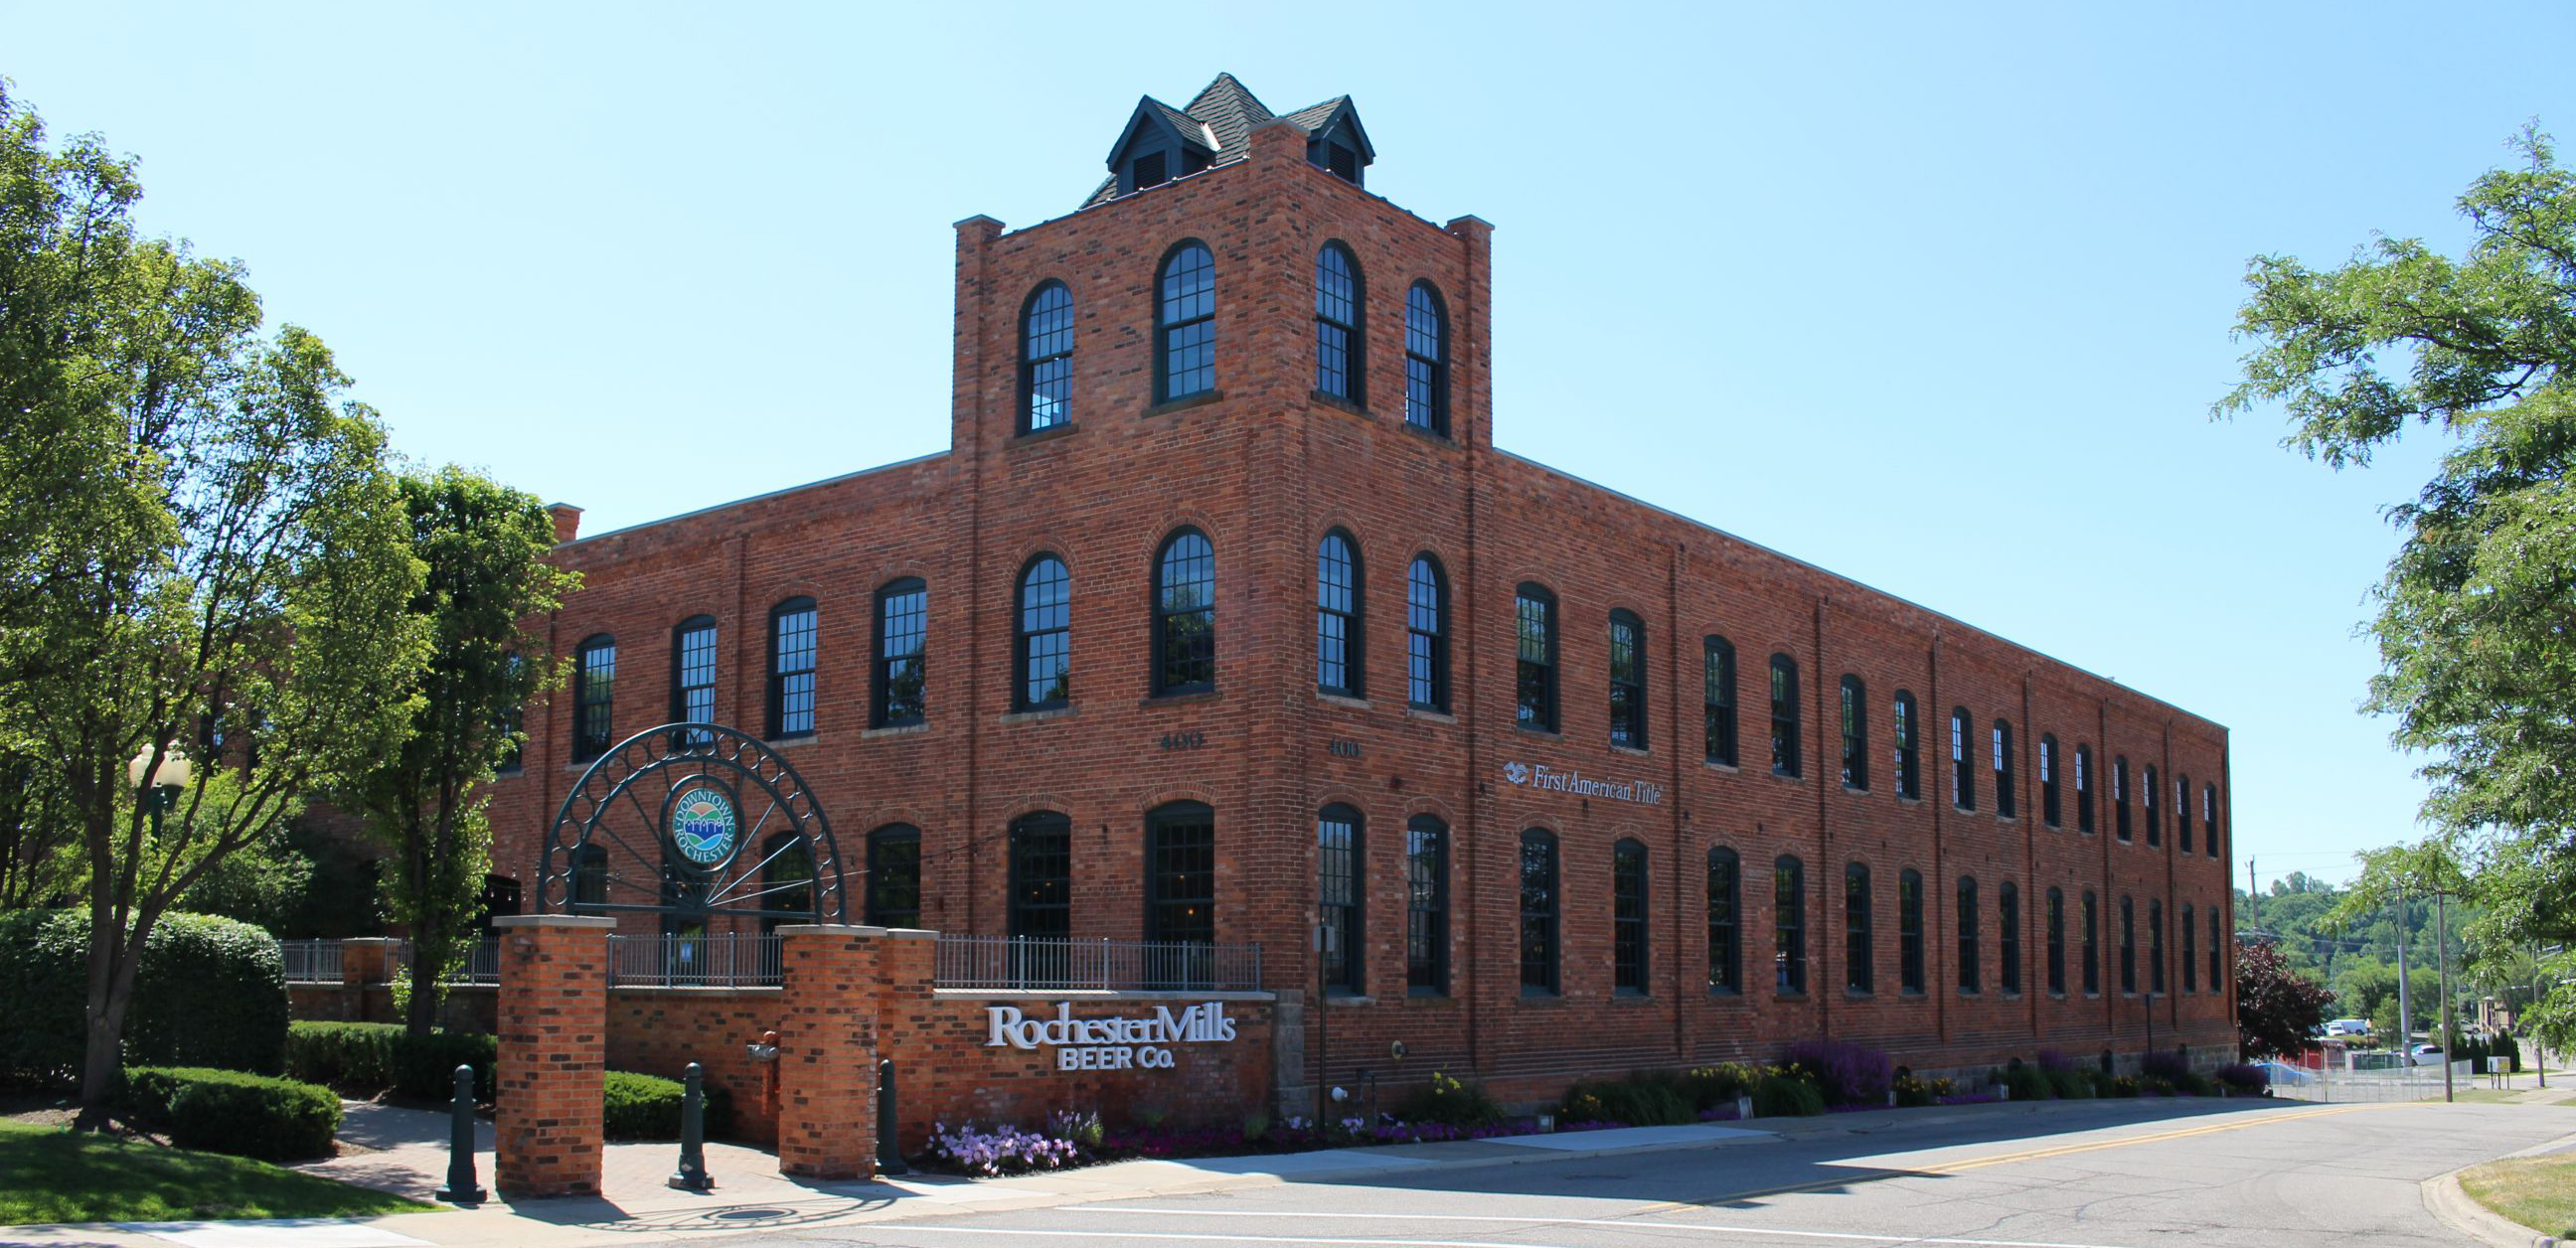 Outside of Rochester Mills Brewing Company